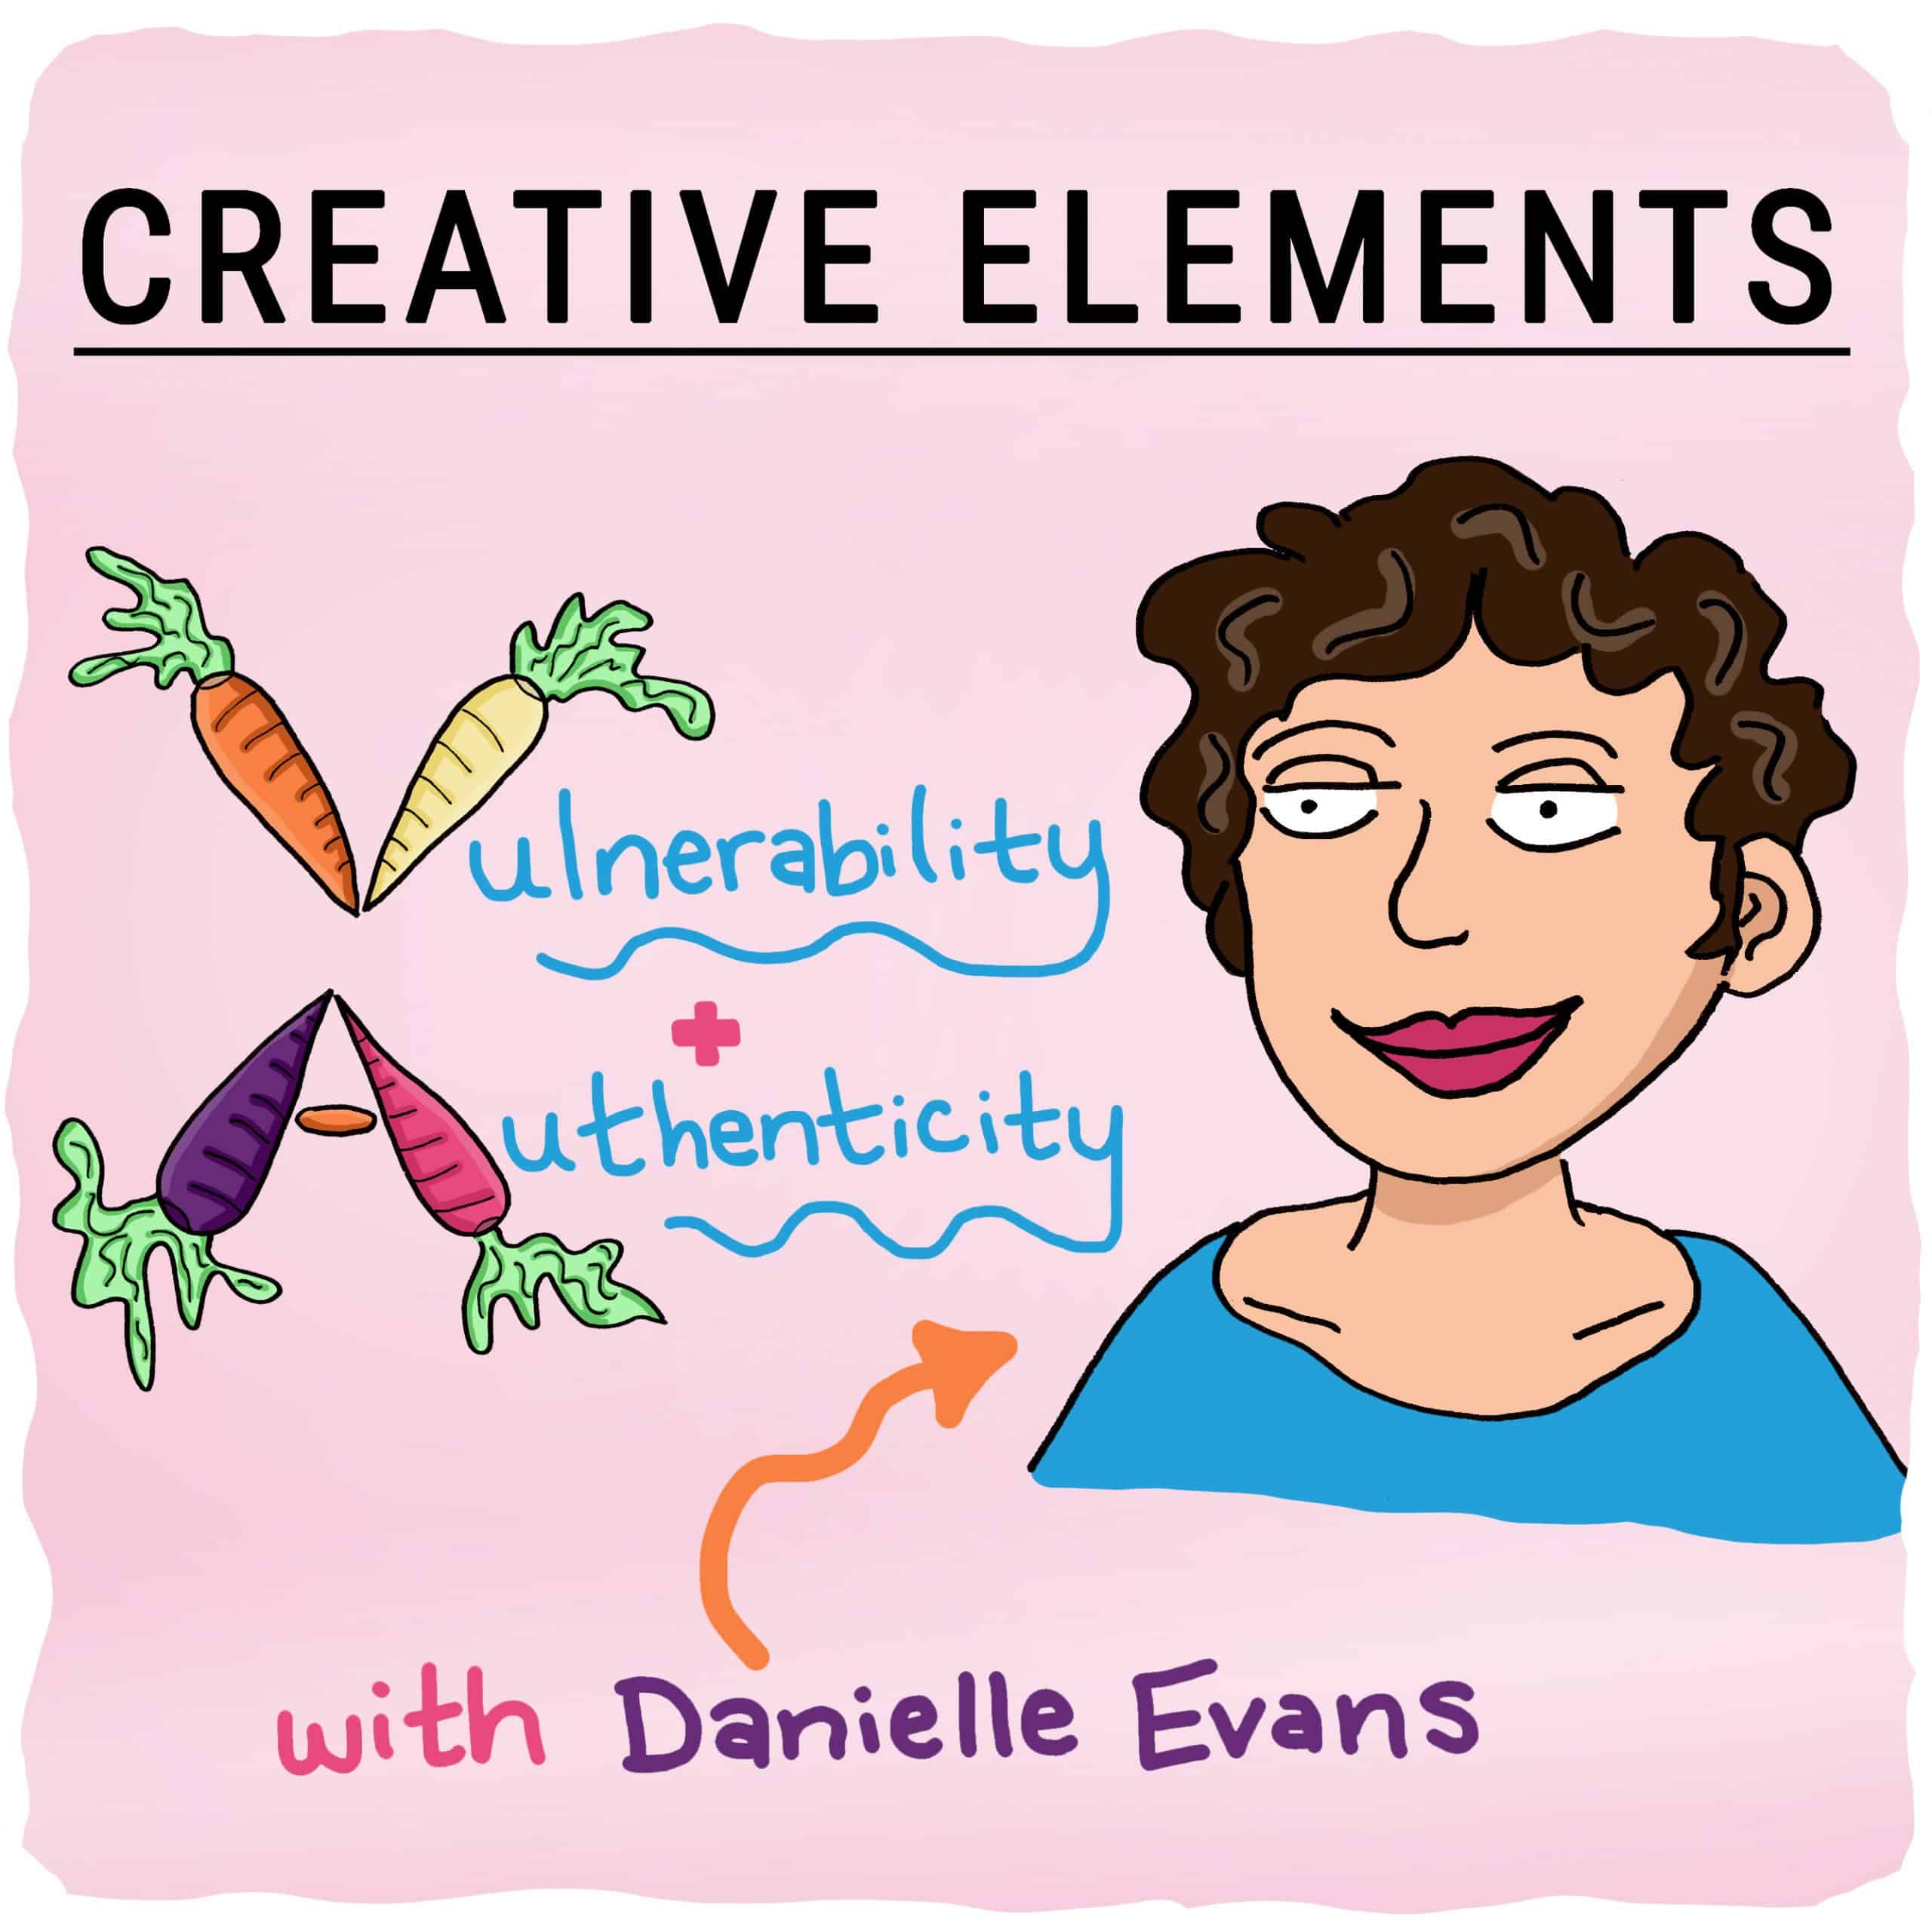 Danielle Evans on Creative Elements